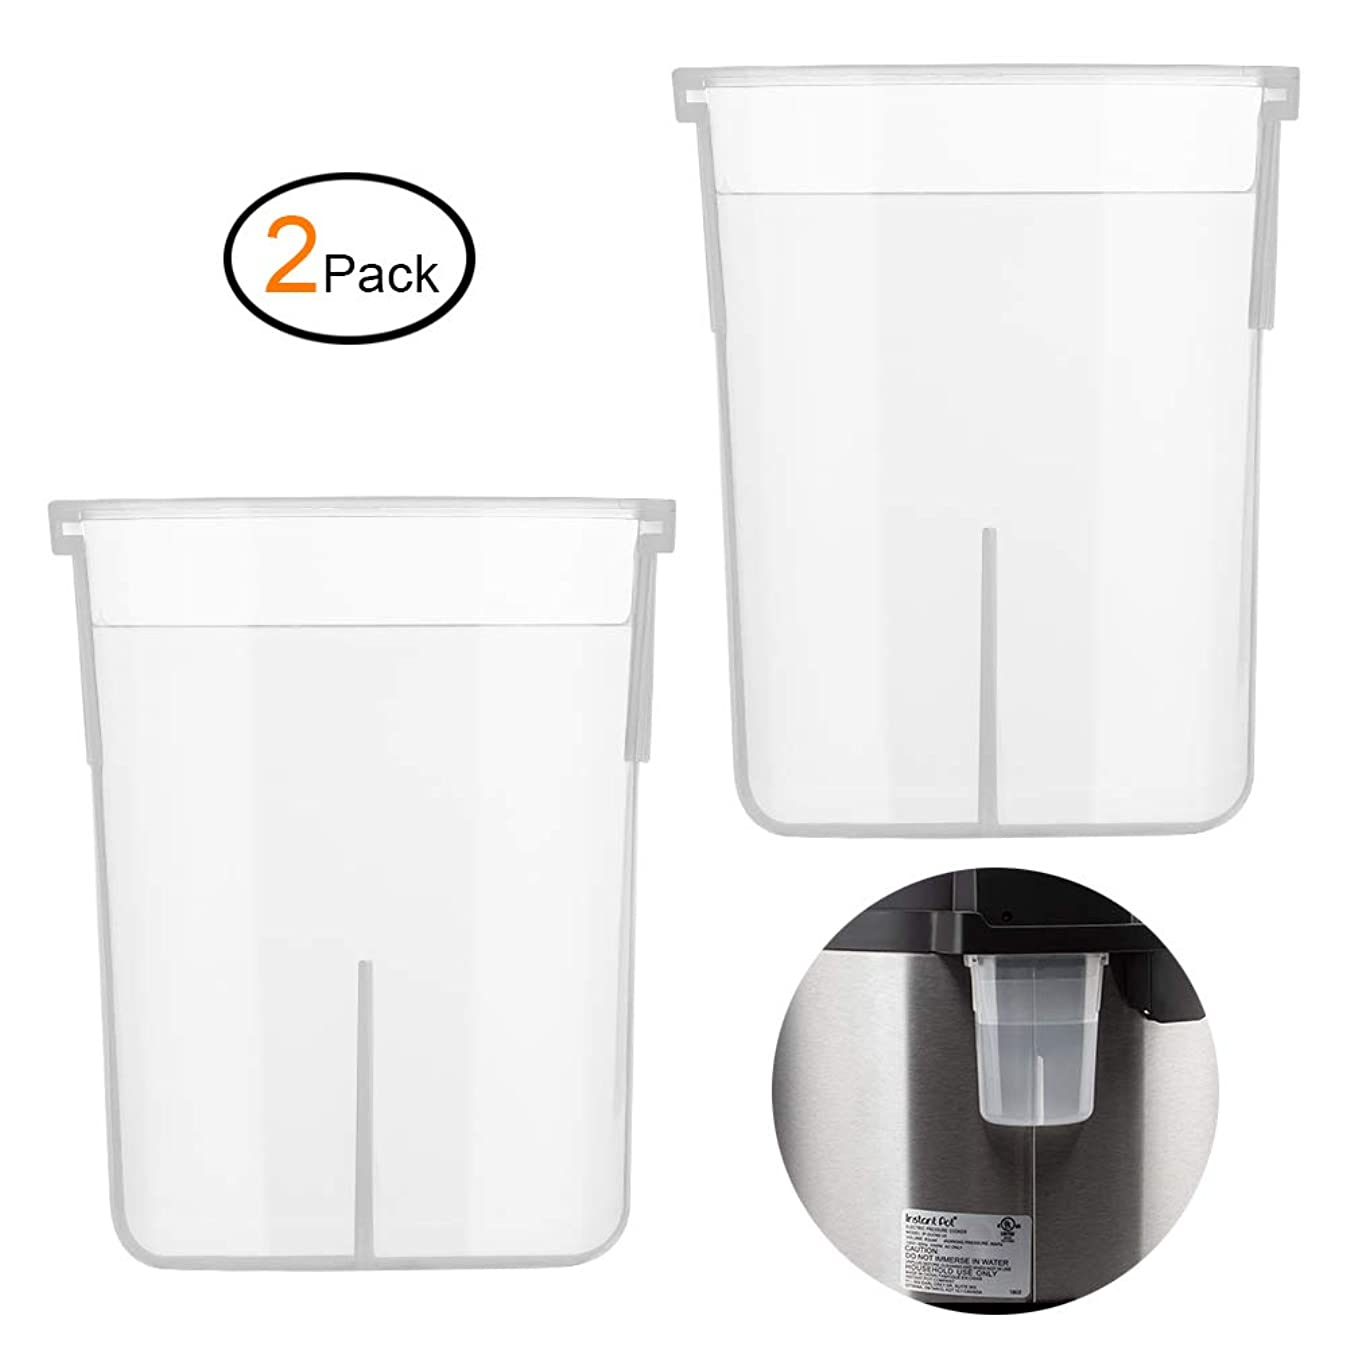 Condensation Collector Cup Replacement for Instant Pot DUO, ULTRA, LUX, 5, 6, 8 Quart All Series Ultra 60, DUO60, DUO89, and LUX80 by Zonefly